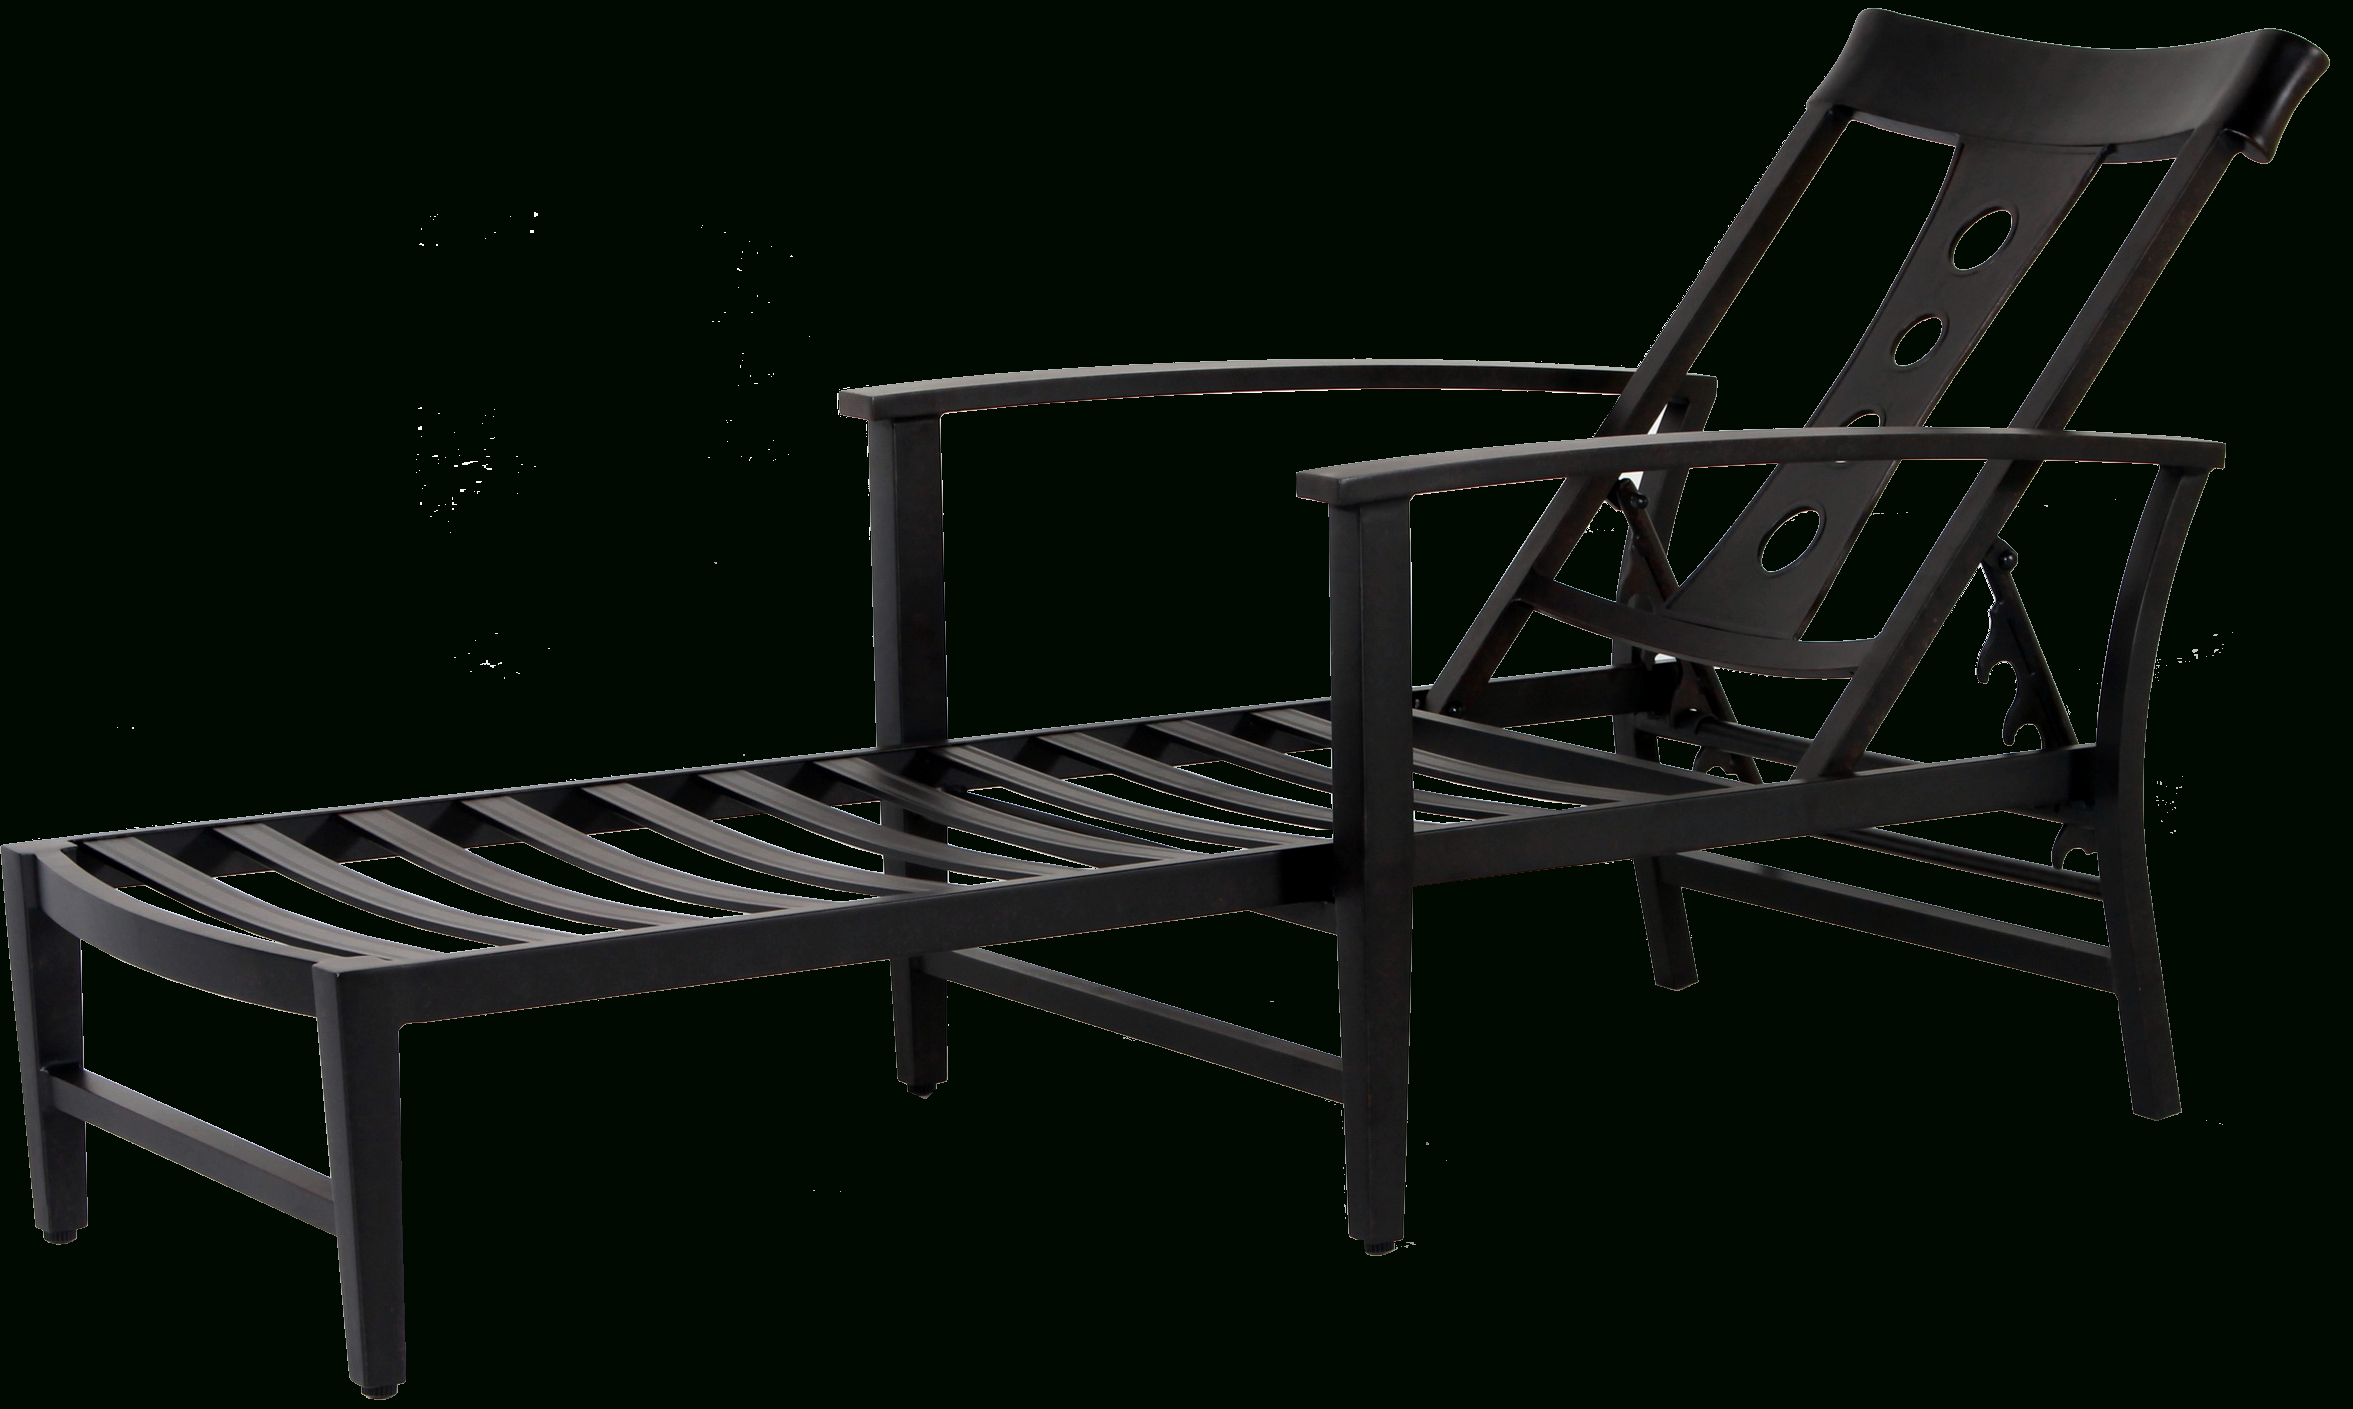 Jamaica Cast Aluminum Patio Furniture Collection – Patio Divas Within Most Current Jamaica Outdoor Chaise Lounges (View 22 of 25)